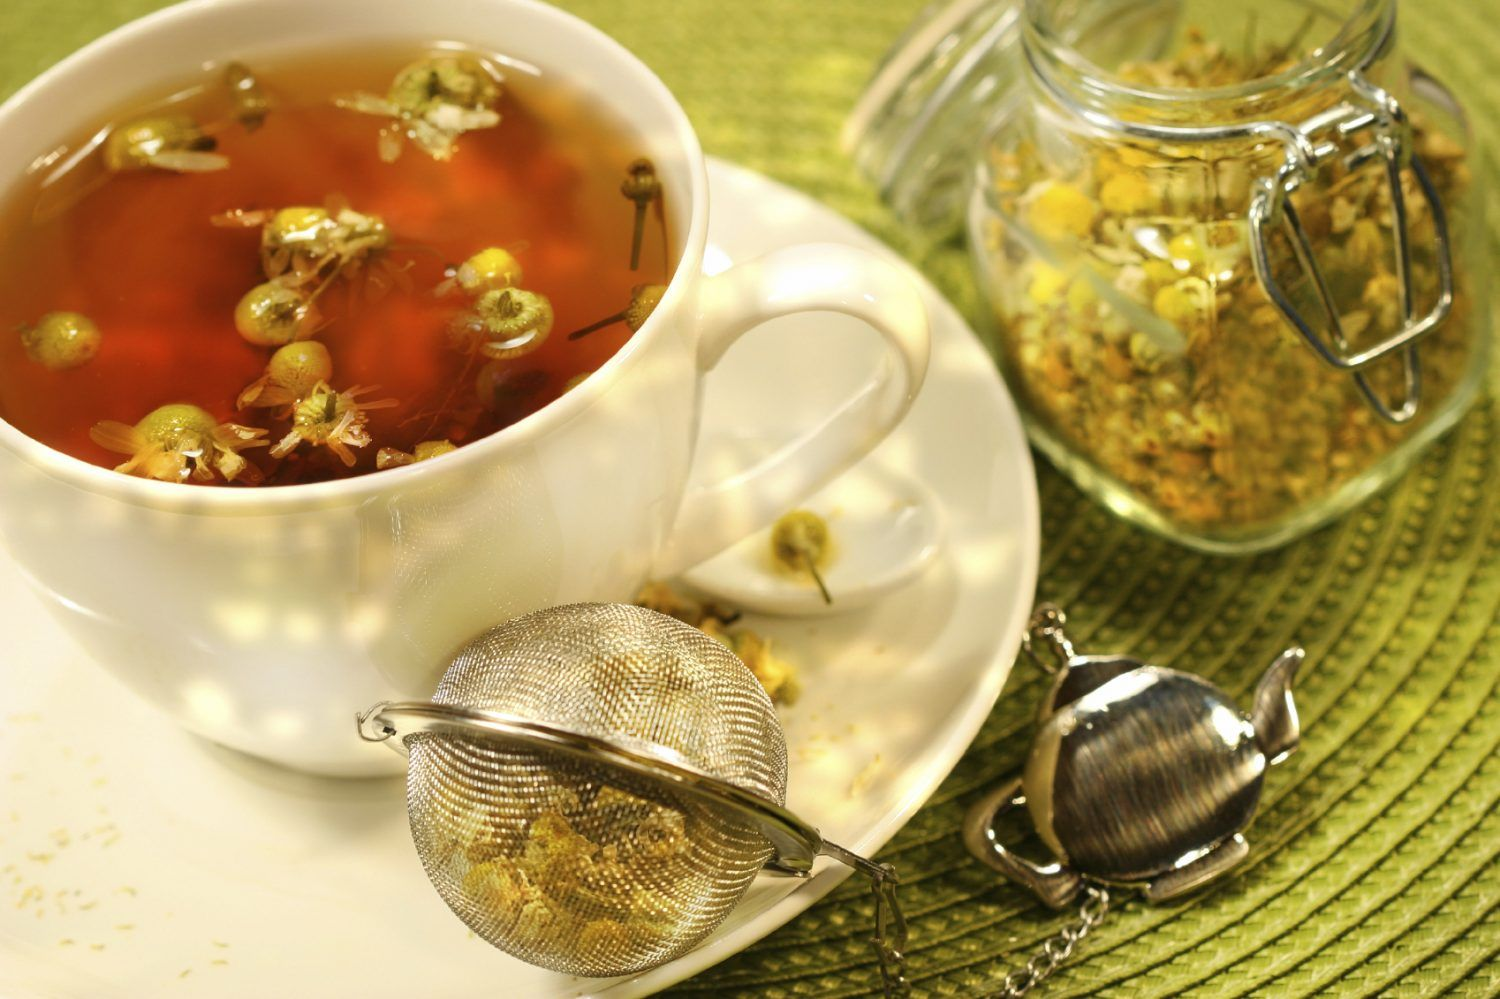 Chinese herbal insomnia tea - Herbal Steam With Chamomile Tea For Stuffy Nose